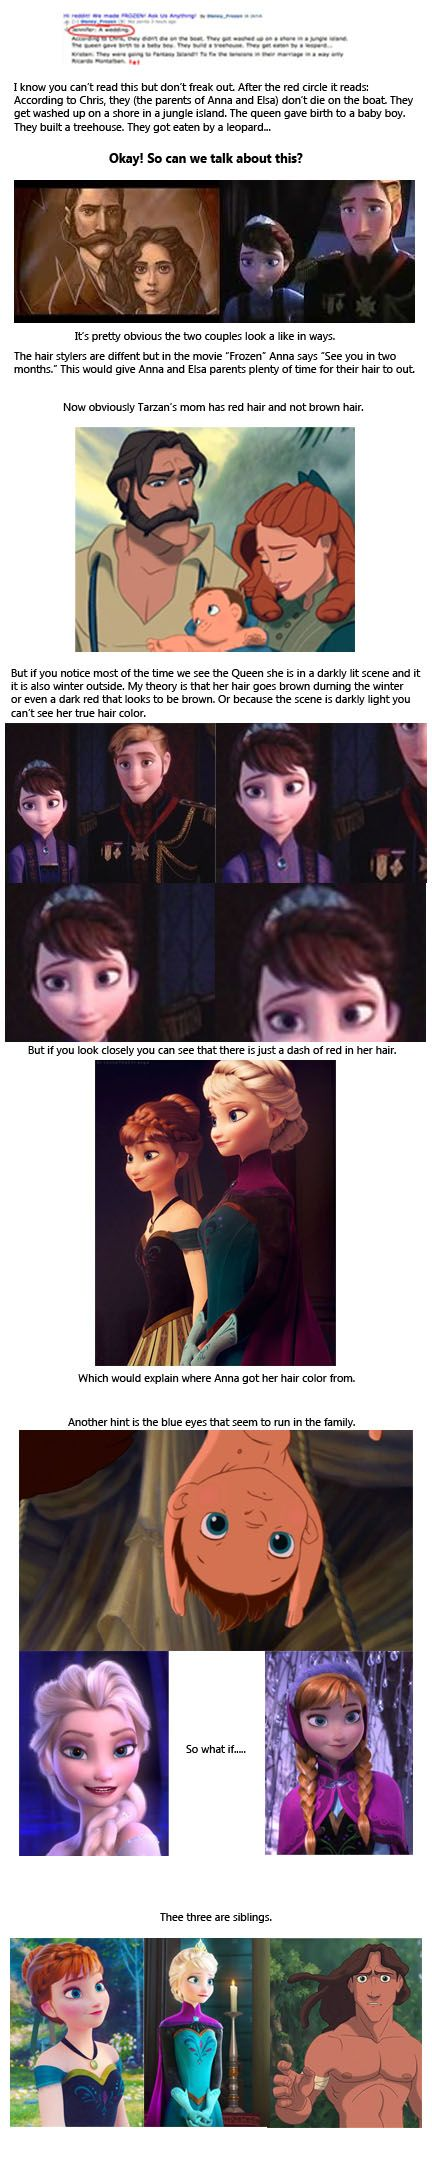 Tarzan's parents were British and Anna and Elsa's parents are Norwegian. So... no.